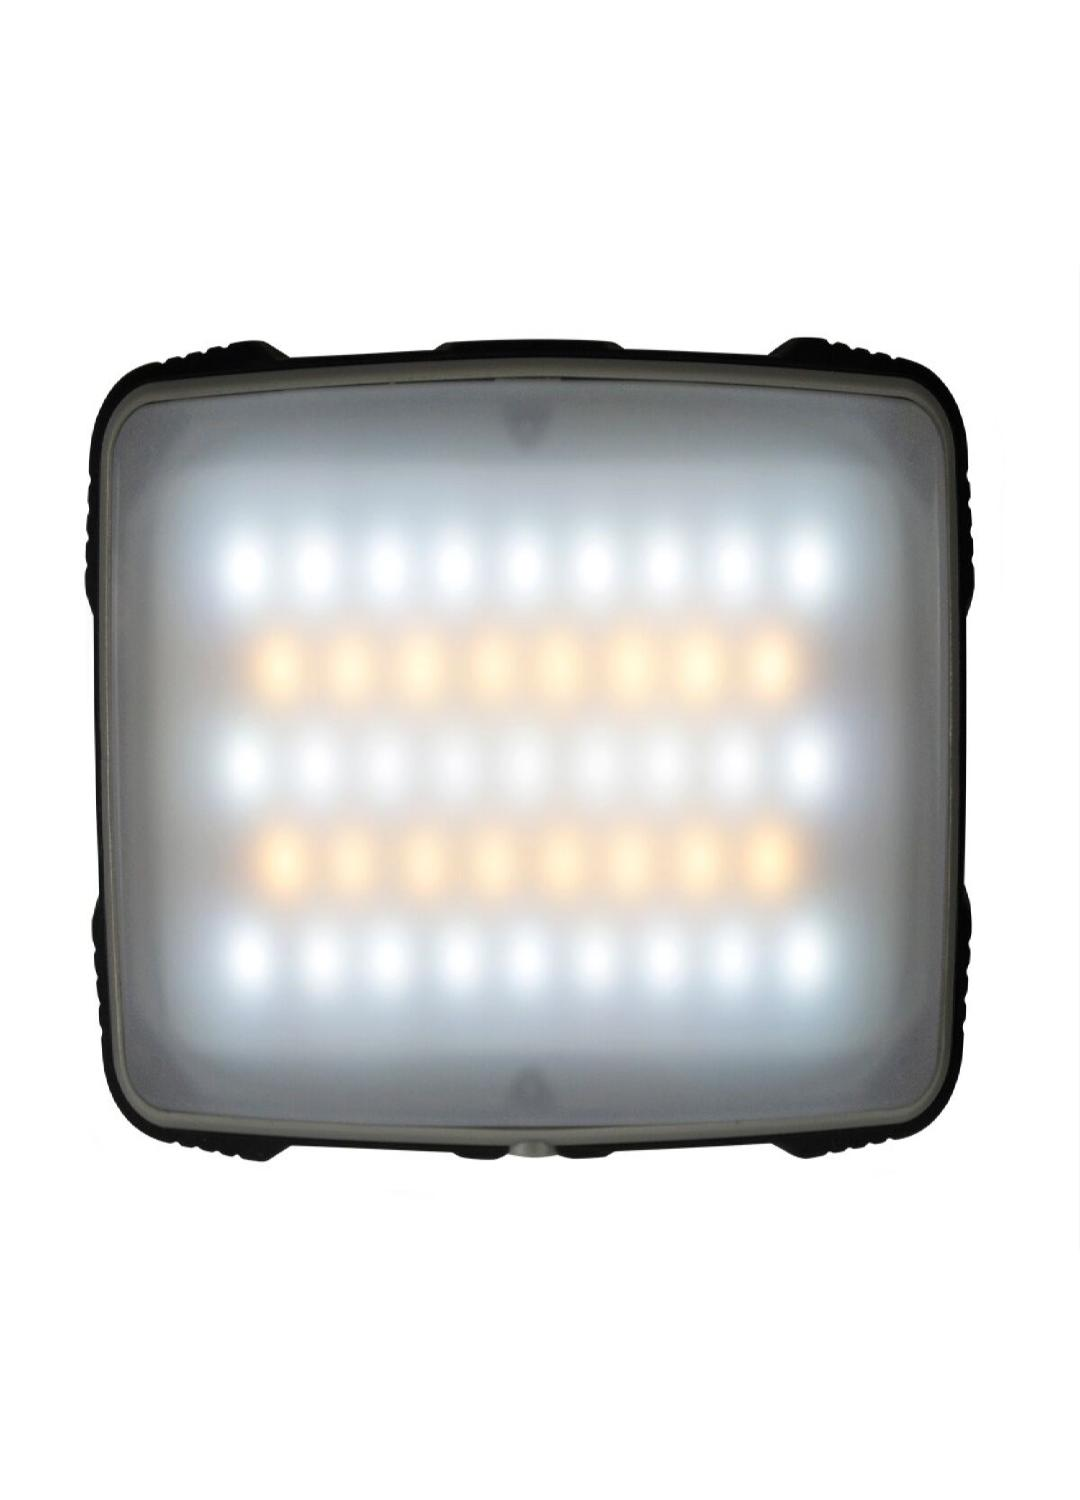 UST Slim 1100 LED Emergency Light